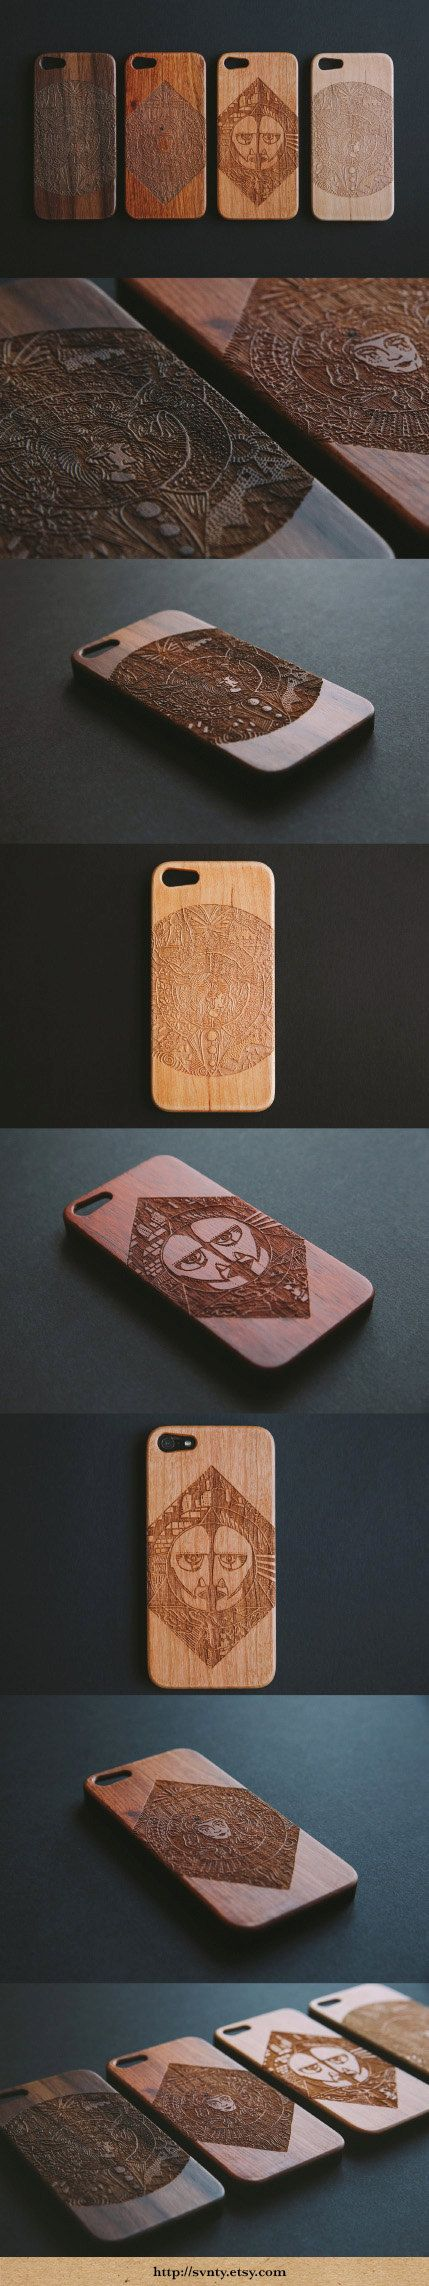 engraved them on wooden Iphone cases, - really loving how they turned out! Going for just $34 each :-) Engraved natural wood, wooden Iphone 5/5S cases by SVNTY on Etsy | Trend Pages |